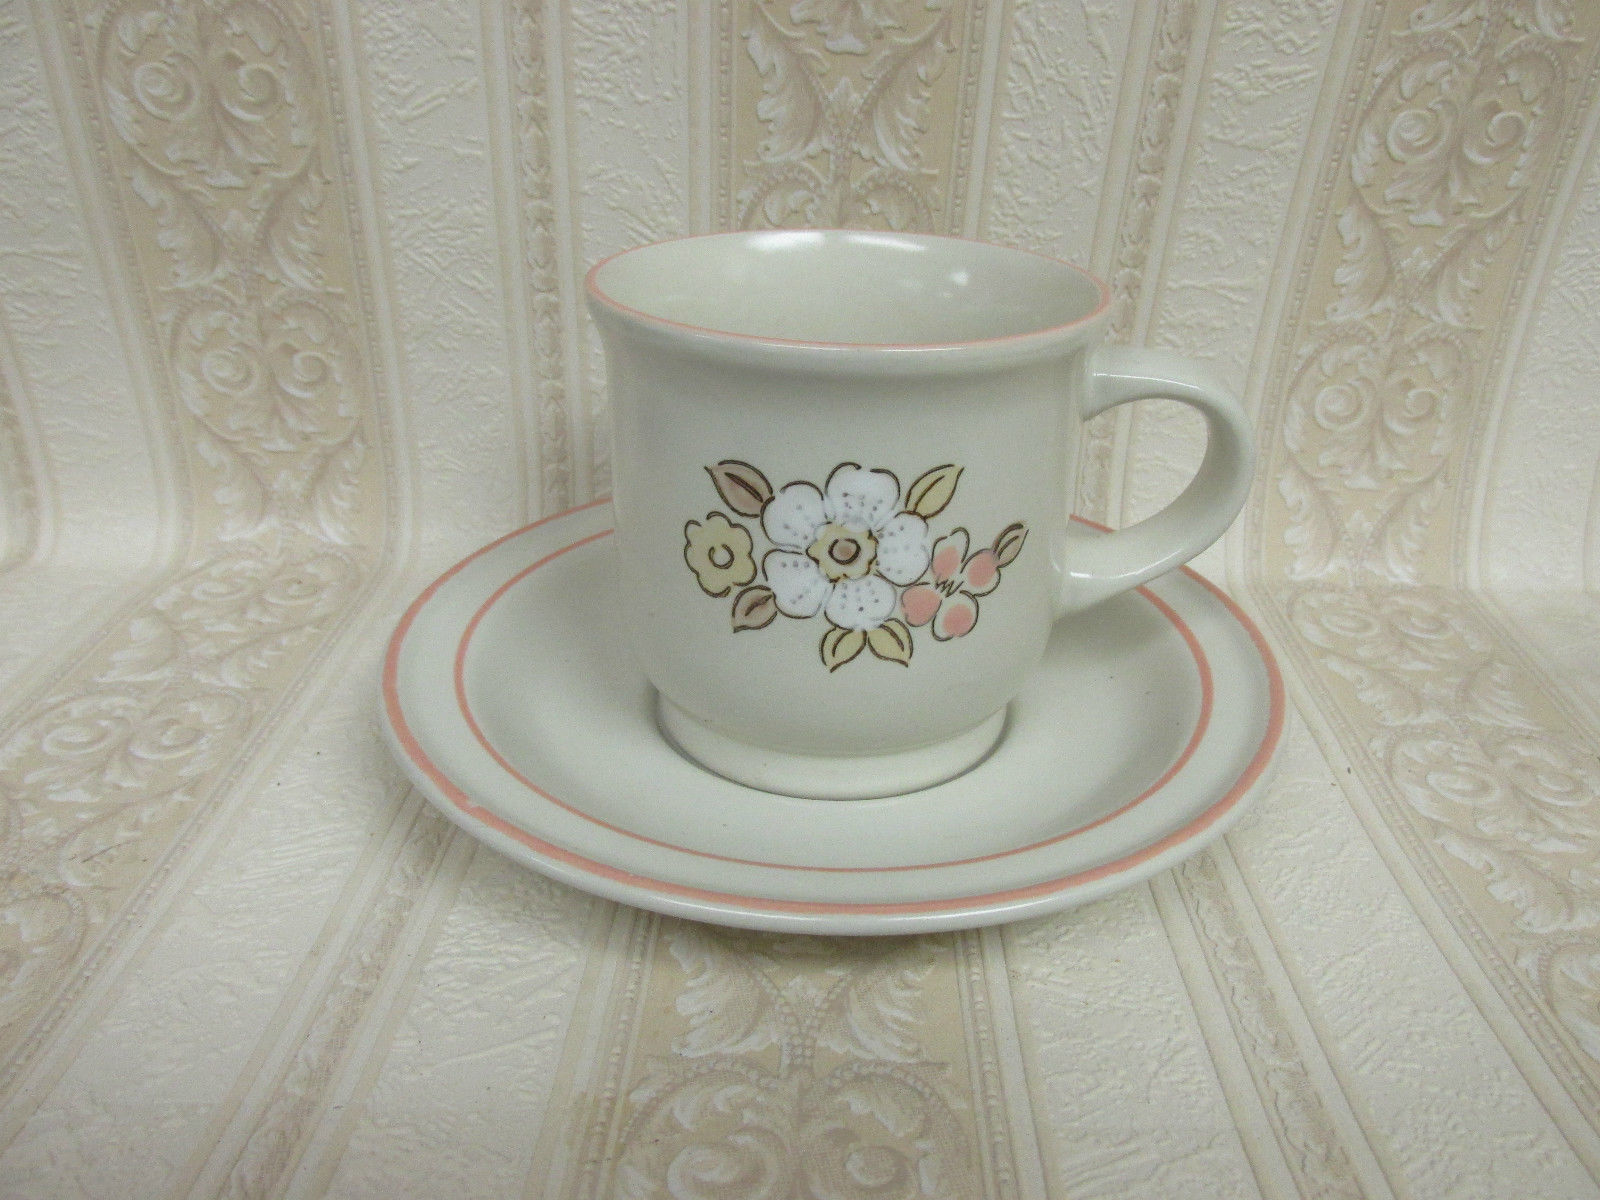 Hearthside Chantilly Fleur De Bois Teacup & Saucer Set-Set of 6